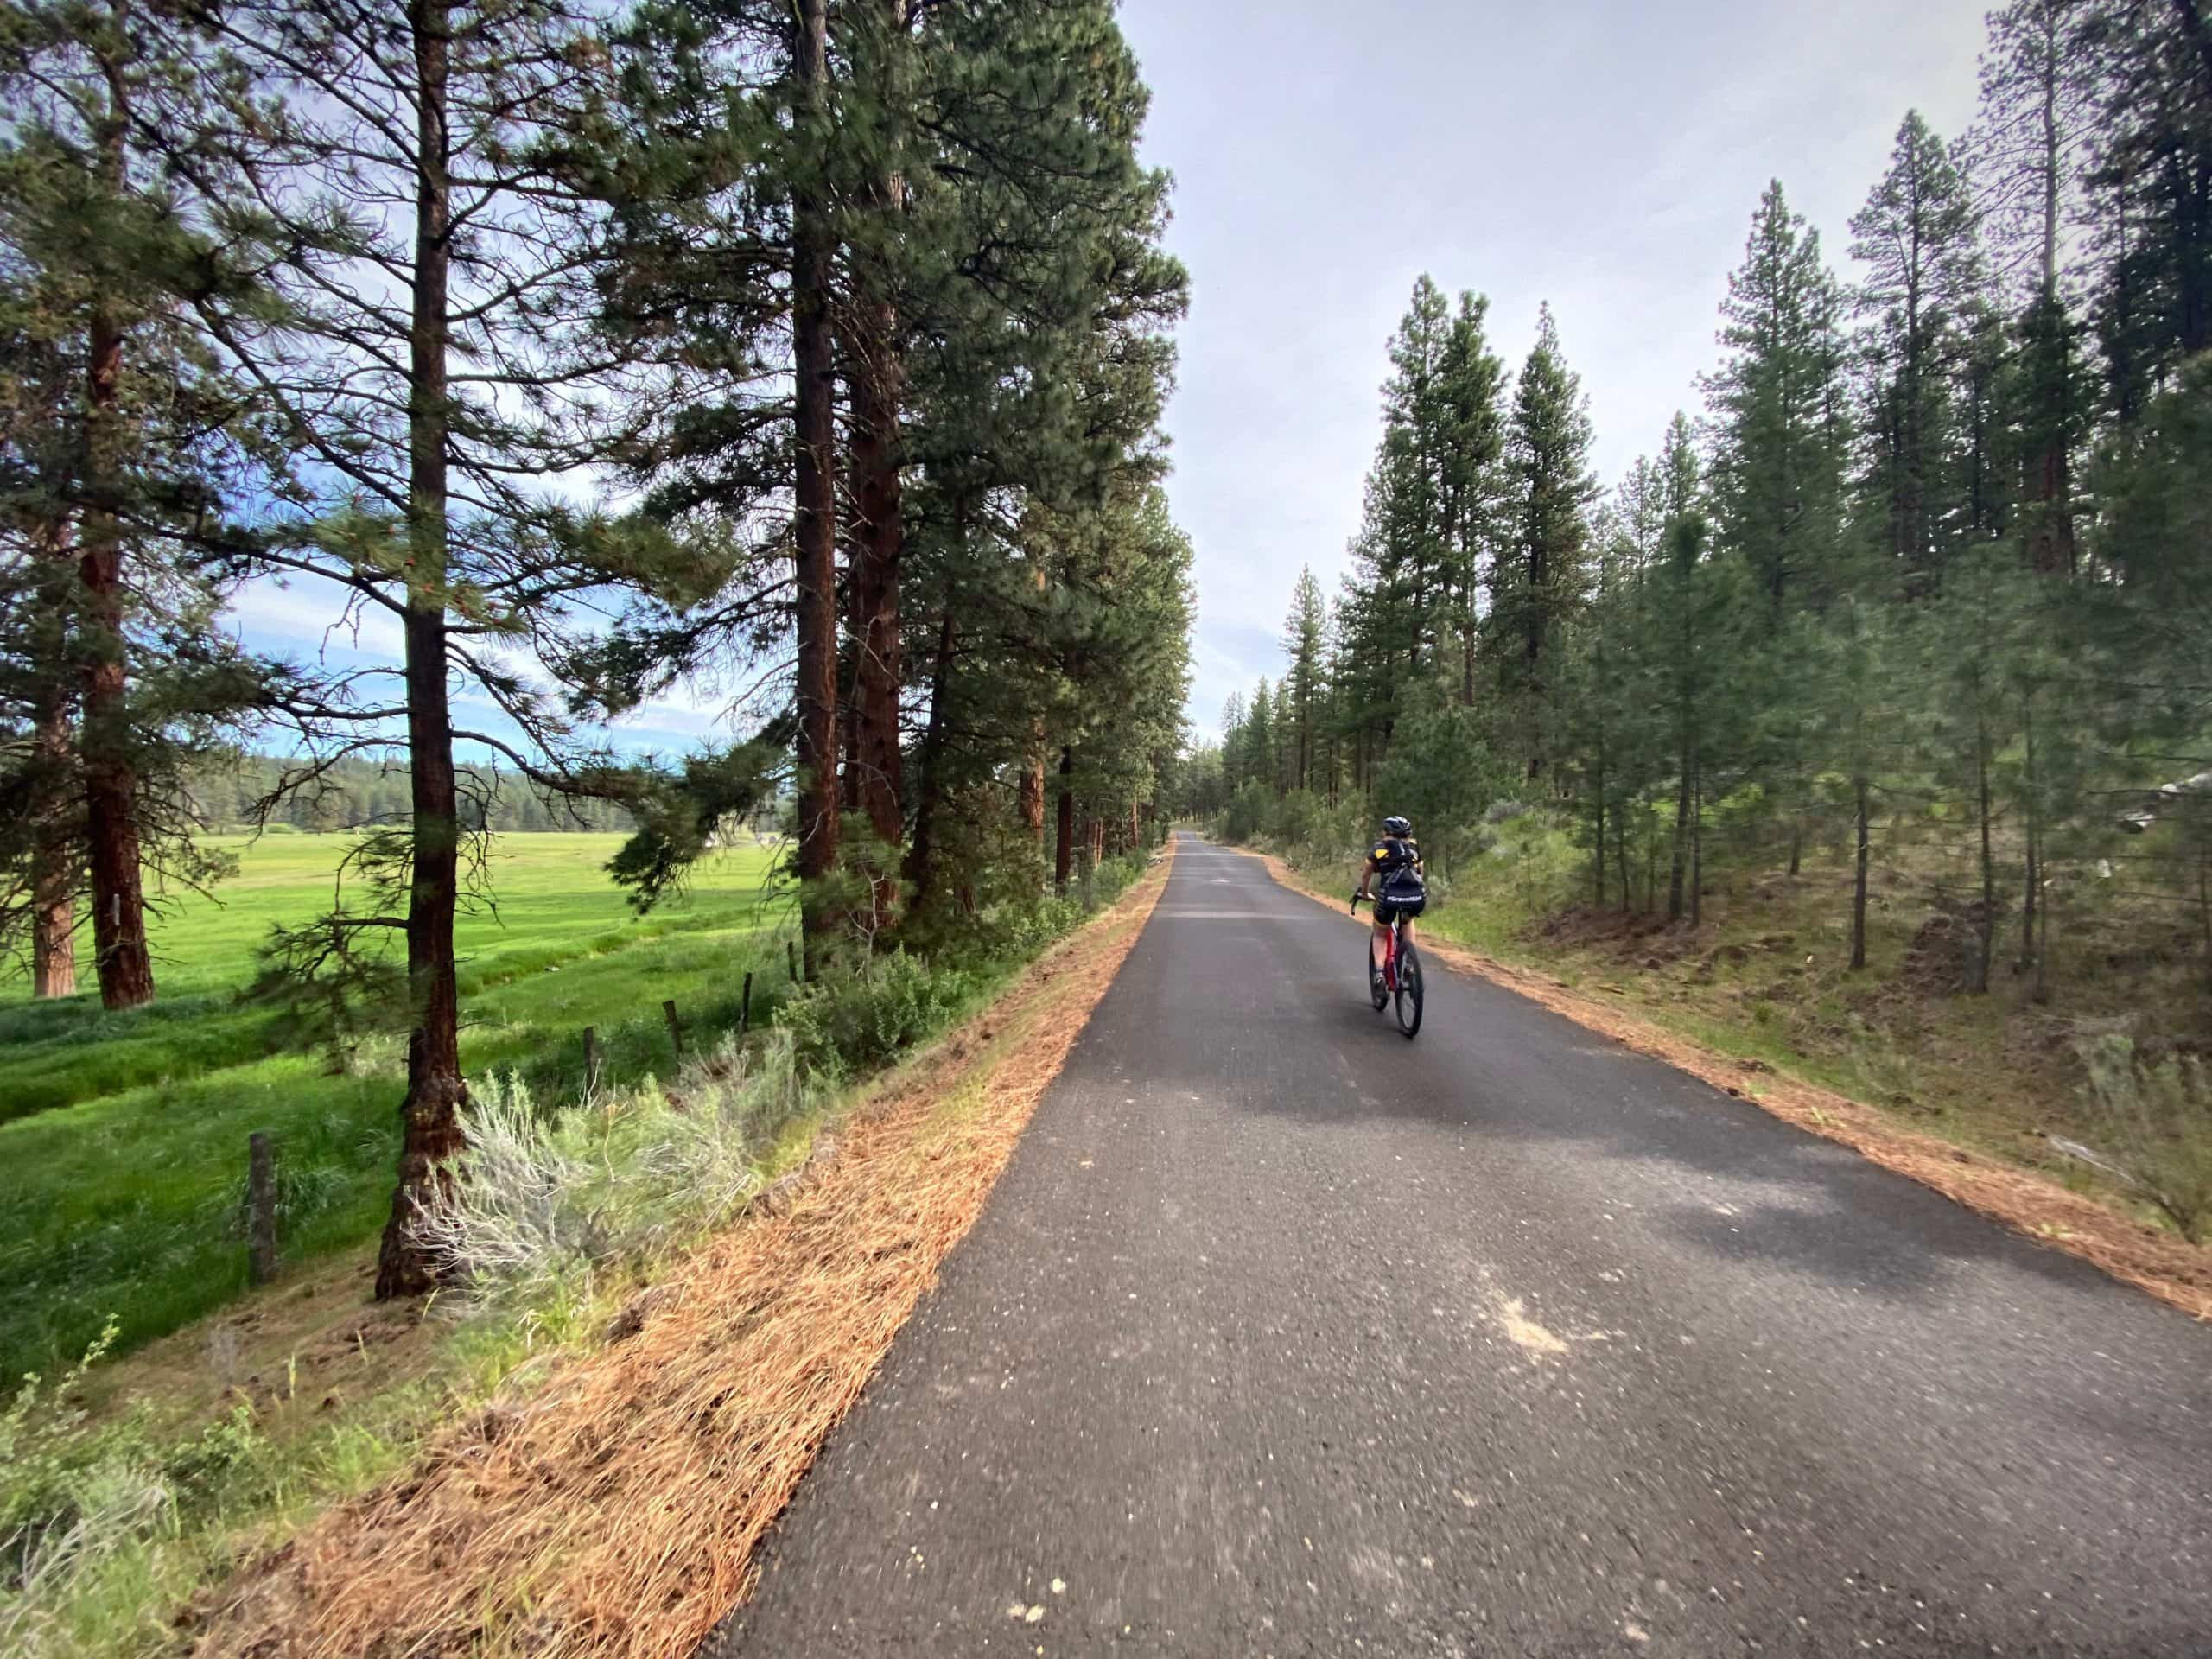 Cyclist on the the one lane paved road NF-42 near Salter's Cabin in the Ochoco National forest.